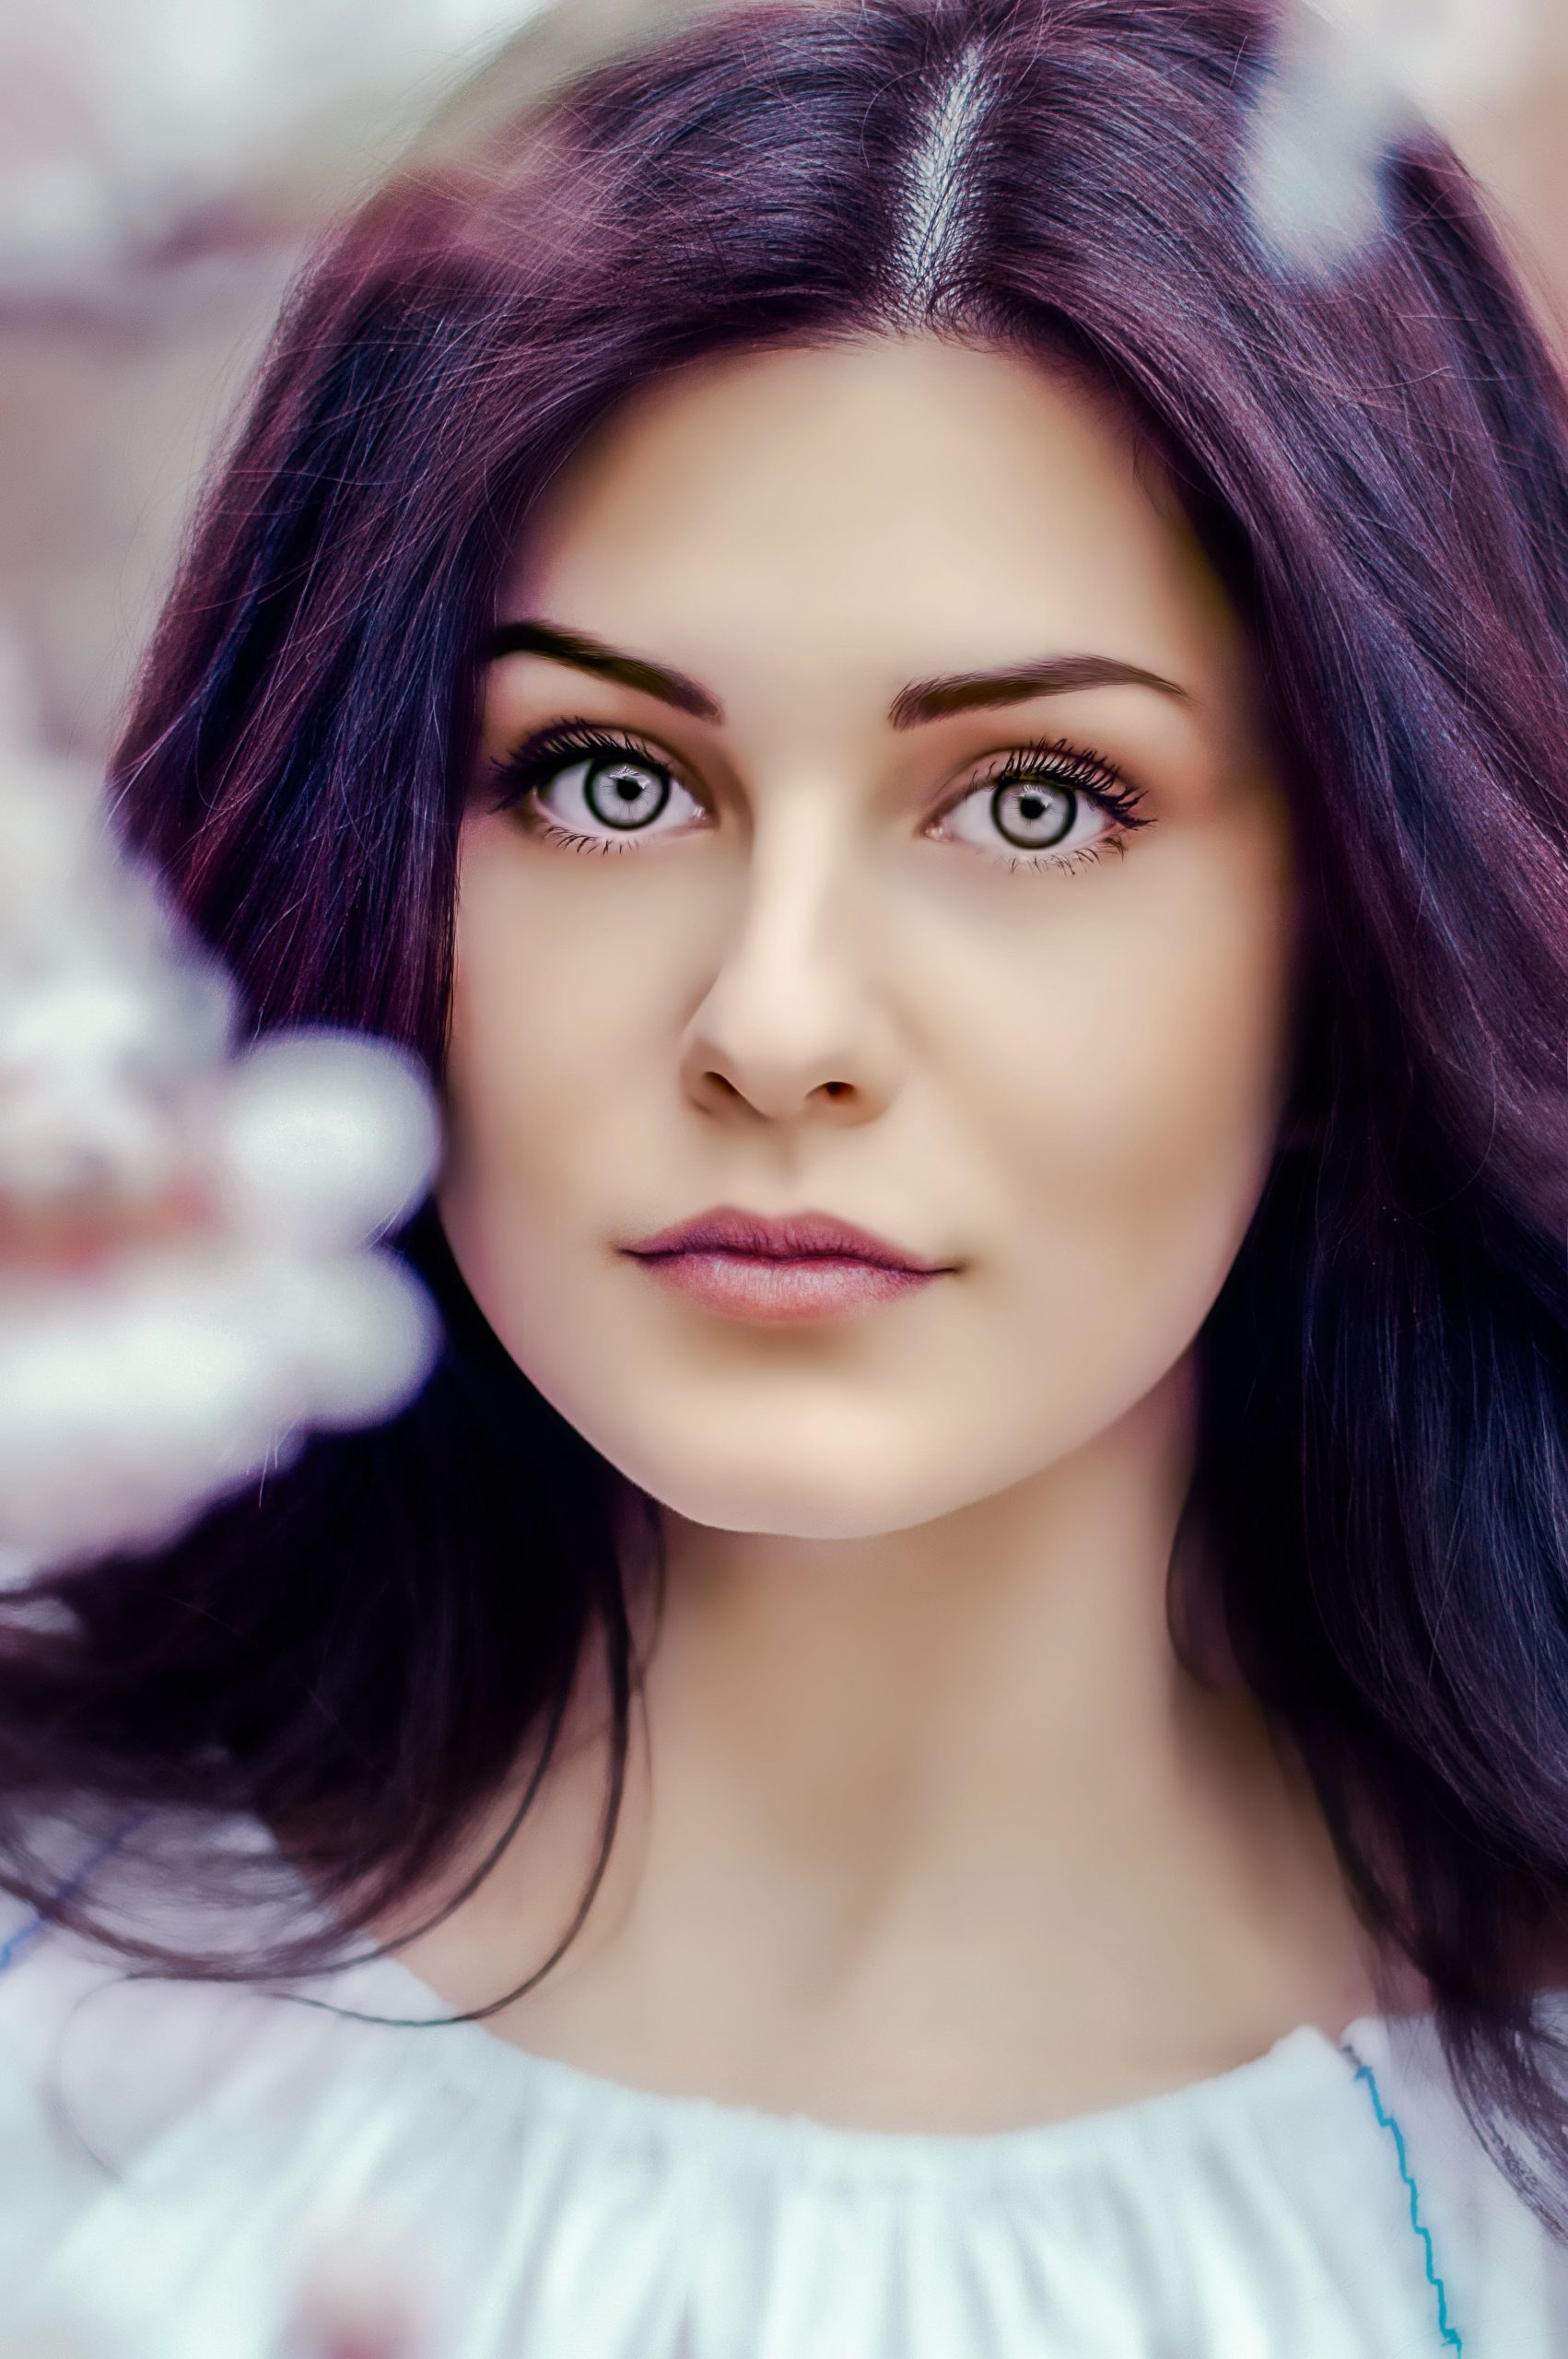 beautiful woman pictured with bright, darkened, purple hair.